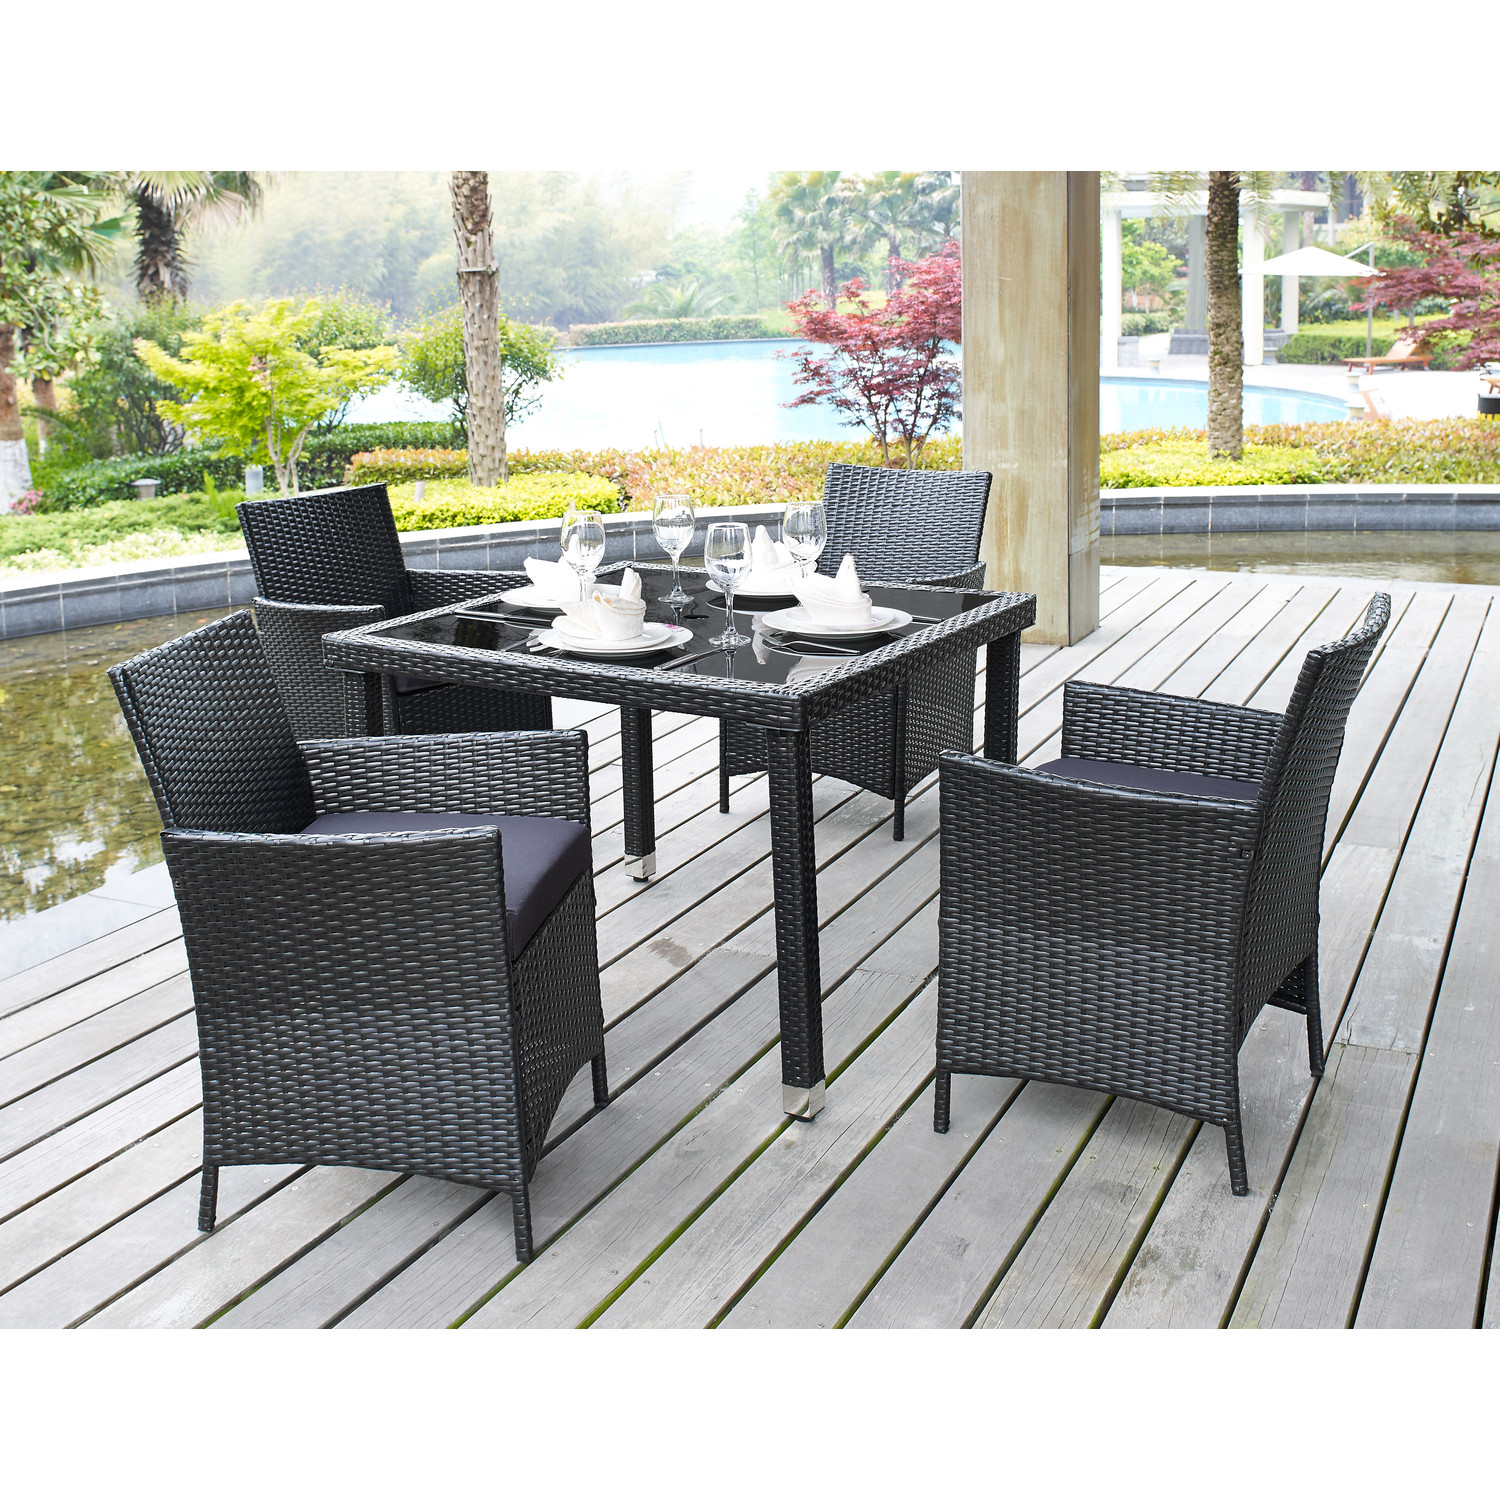 Places to go for affordable modern outdoor furniture for Outdoor furniture